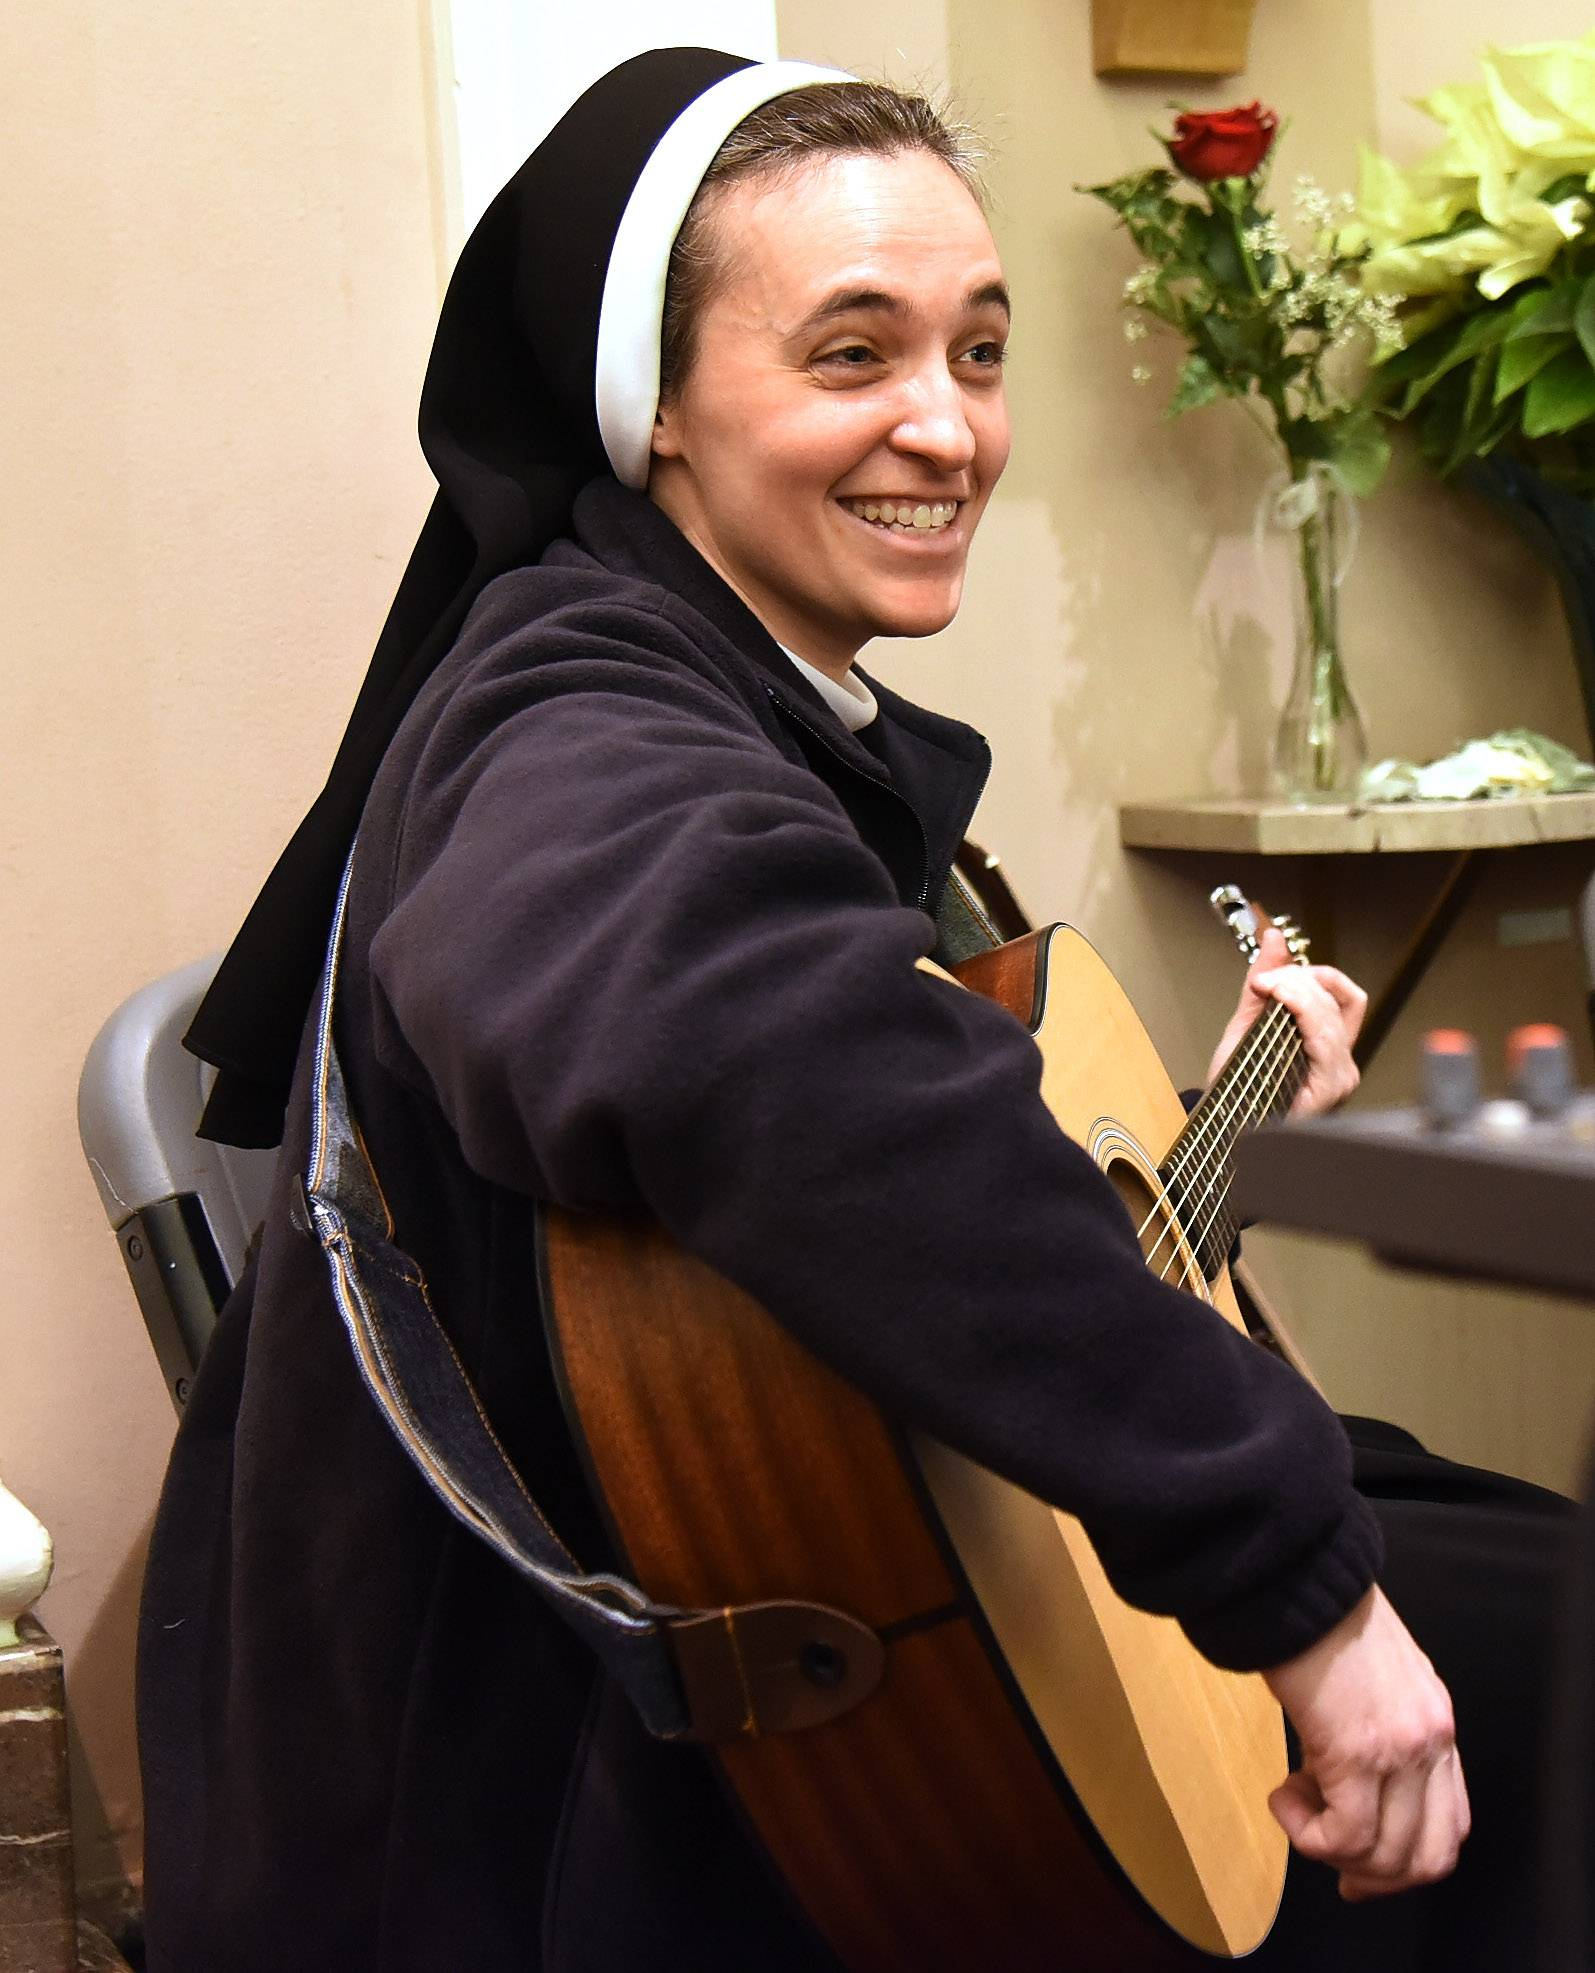 Sister Faustina Ferko plays guitar with the youth choir during a Sunday evening mass at St. James Parish in Arlington Heights.